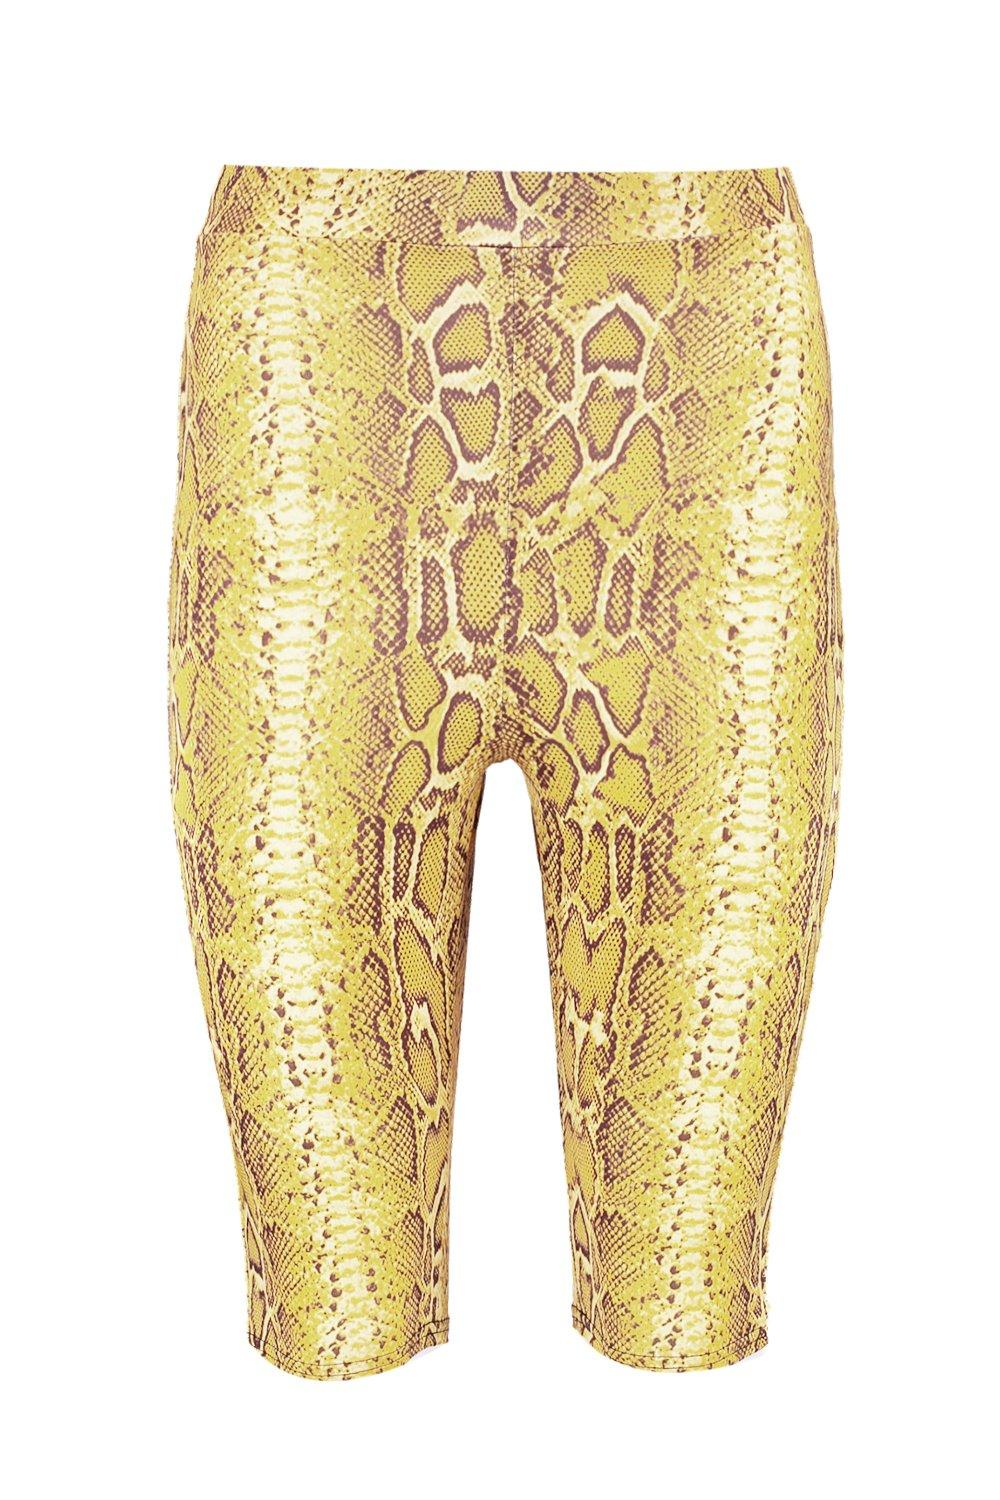 yellow Snake Shorts Print Cycling Slinky nrSqA0SIxC